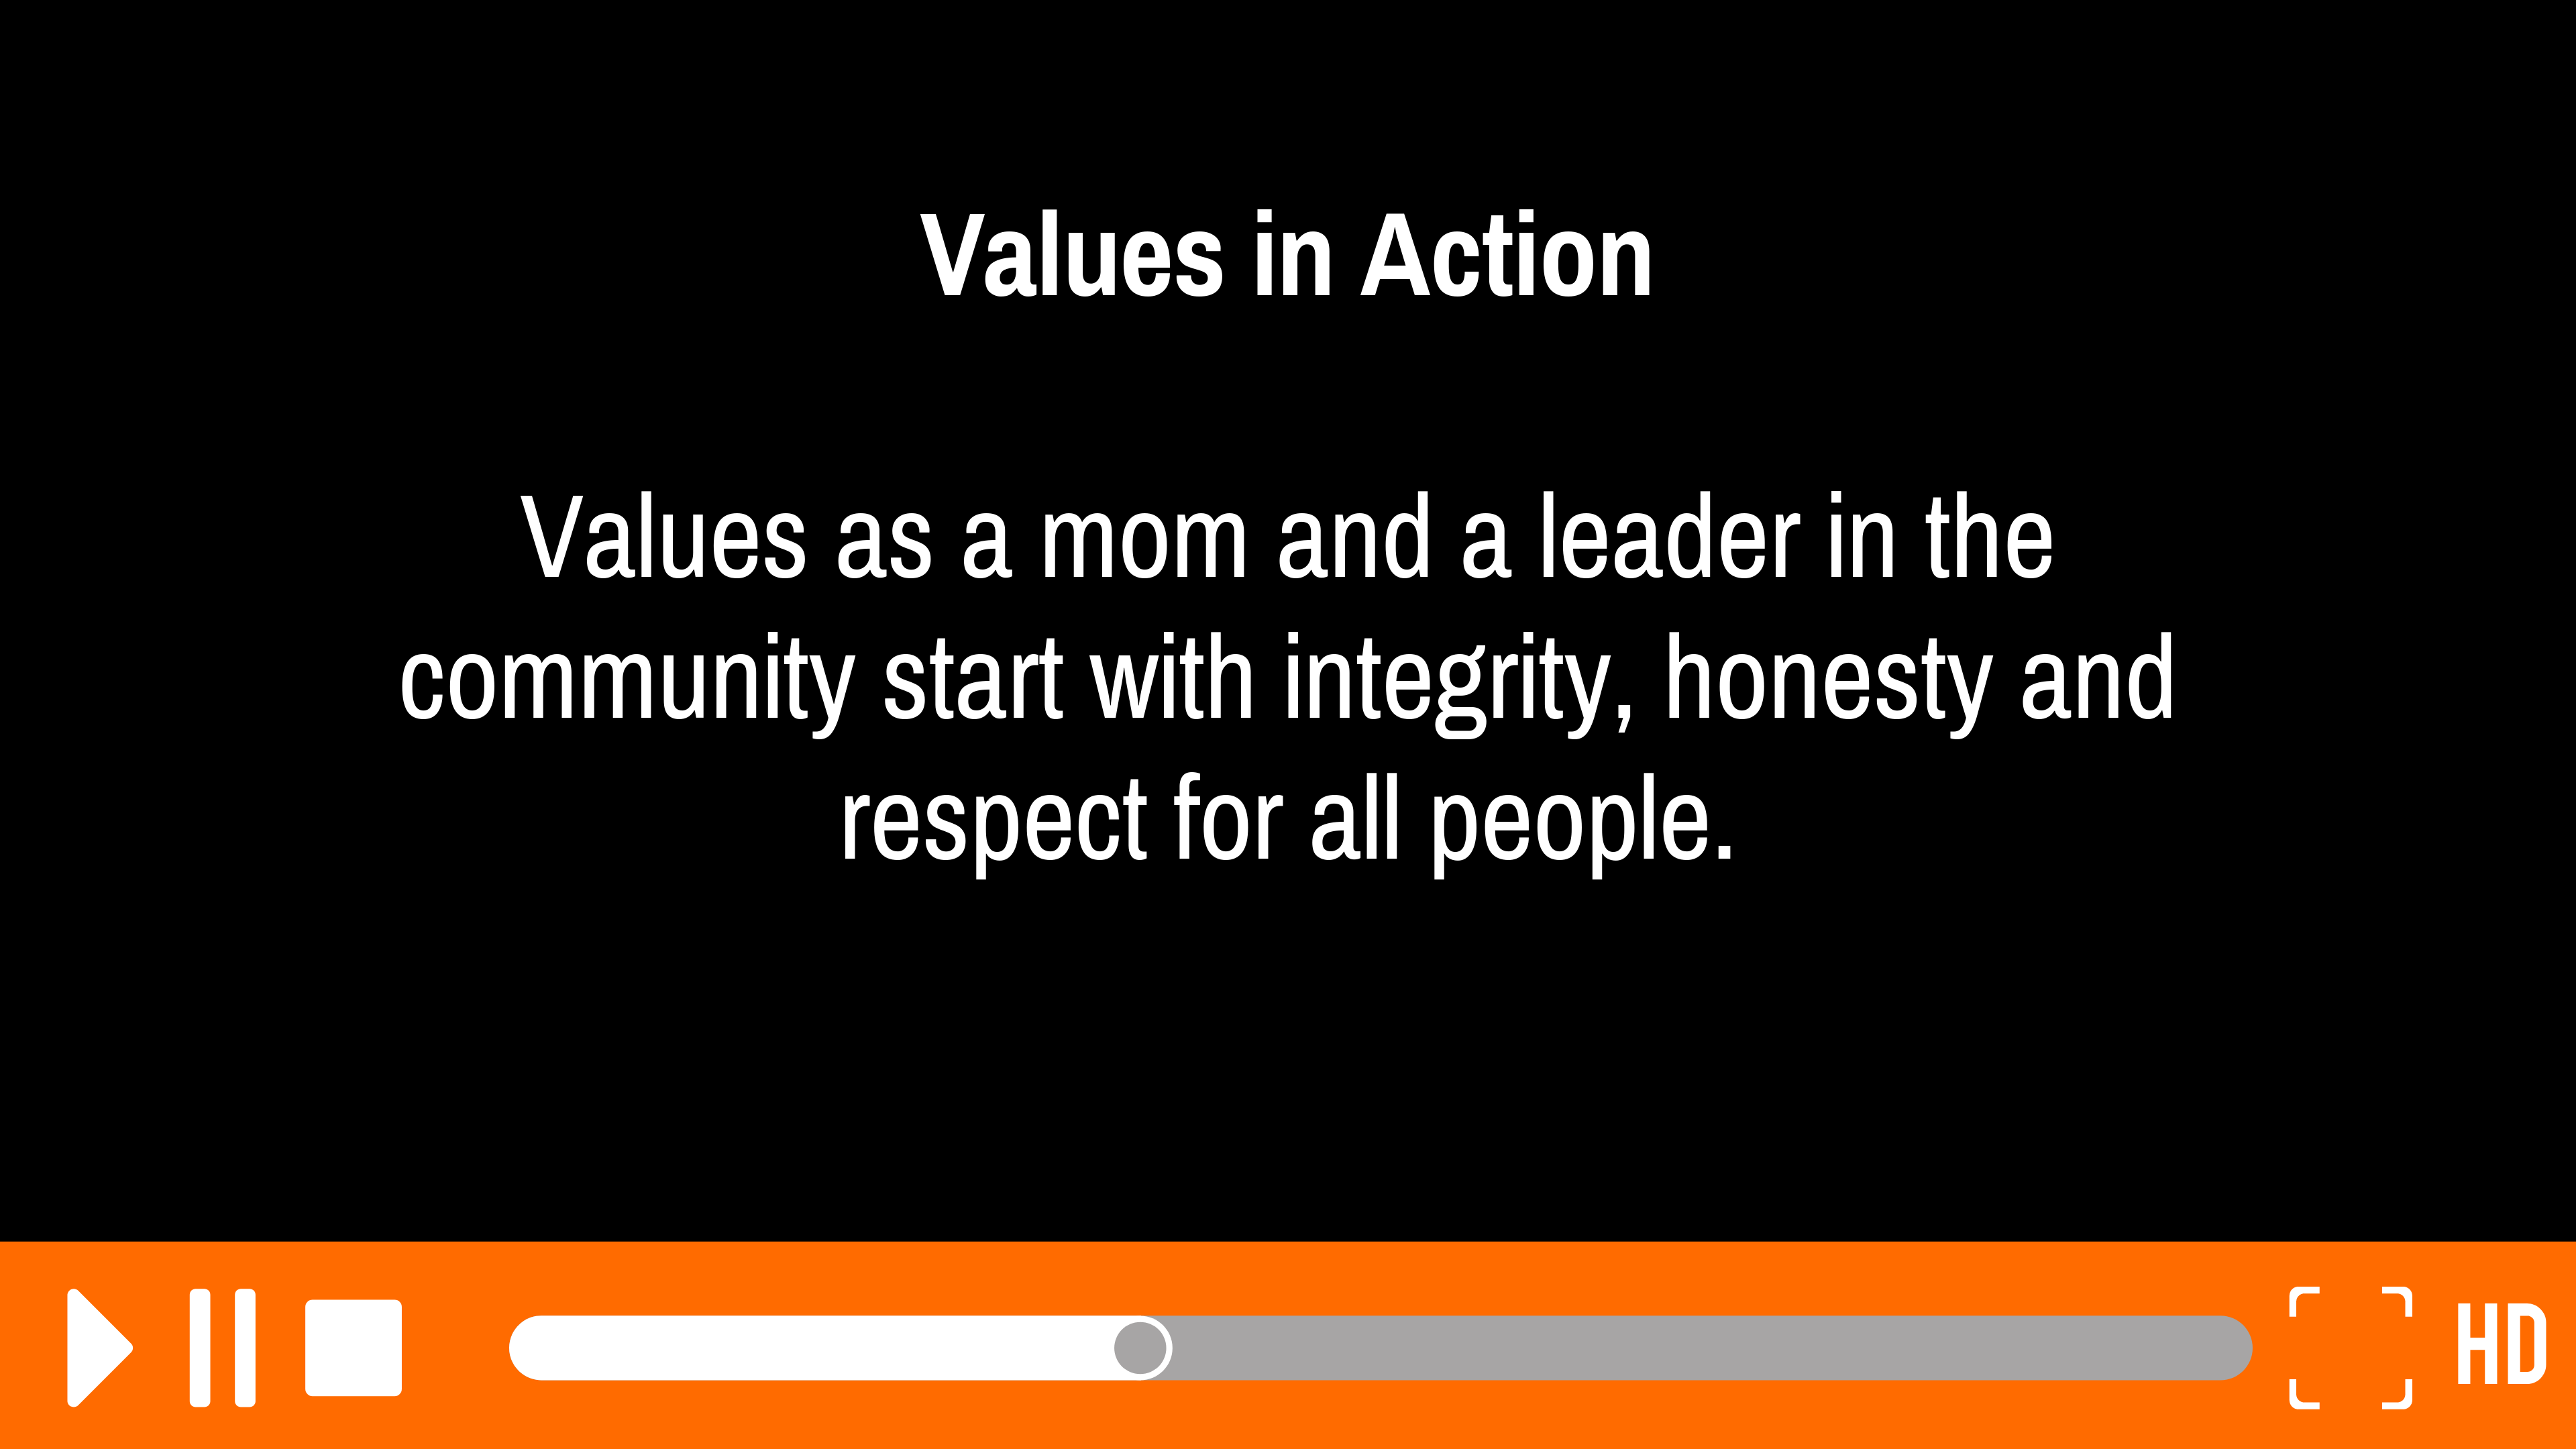 Values in Action: Segment 5 of 6